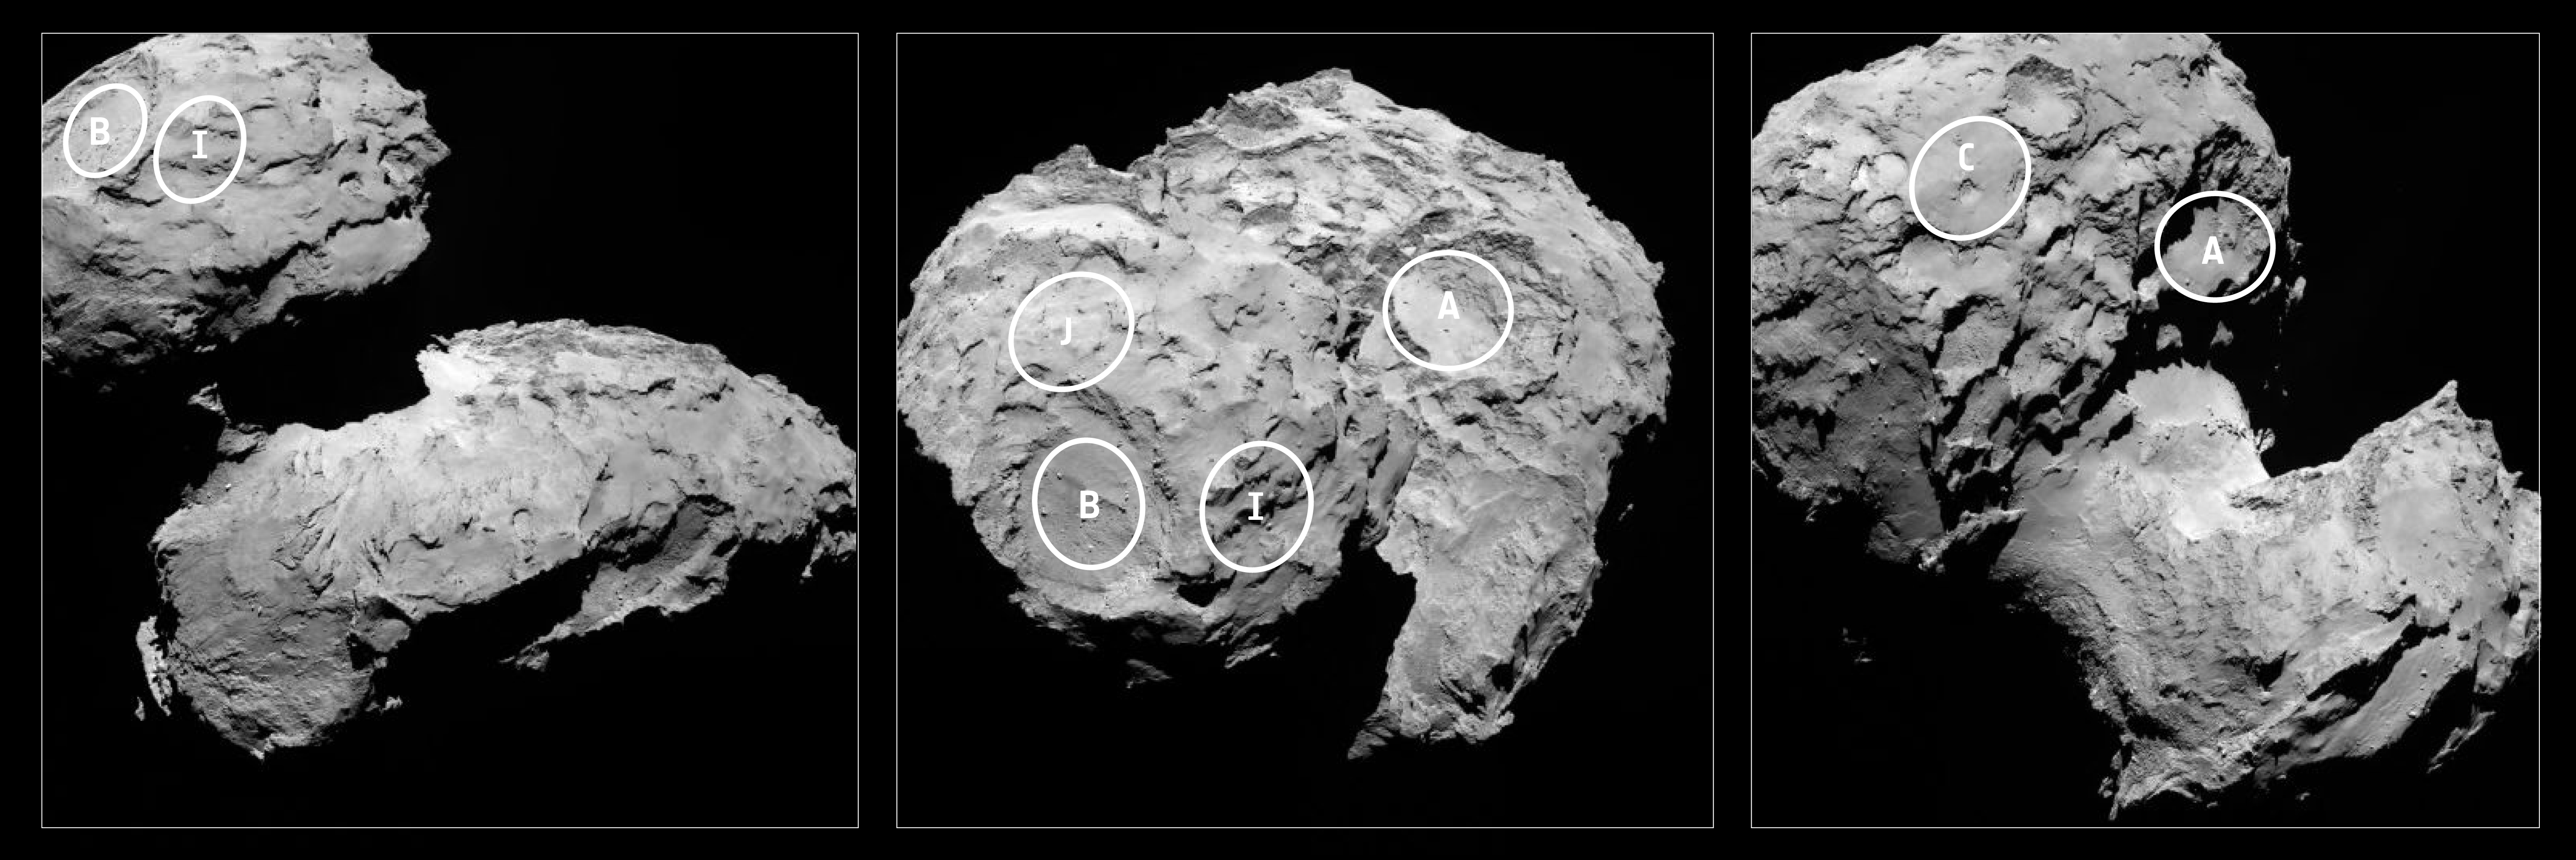 Five candidate sites were identified on Comet 67P/Churyumov-Gerasimenko during the Landing Site Selection Group meeting held 23–24 August 2014. Image by ESA/Rosetta/MPS for OSIRIS Team MPS/UPD/LAM/IAA/SSO/INTA/UPM/DASP/IDA